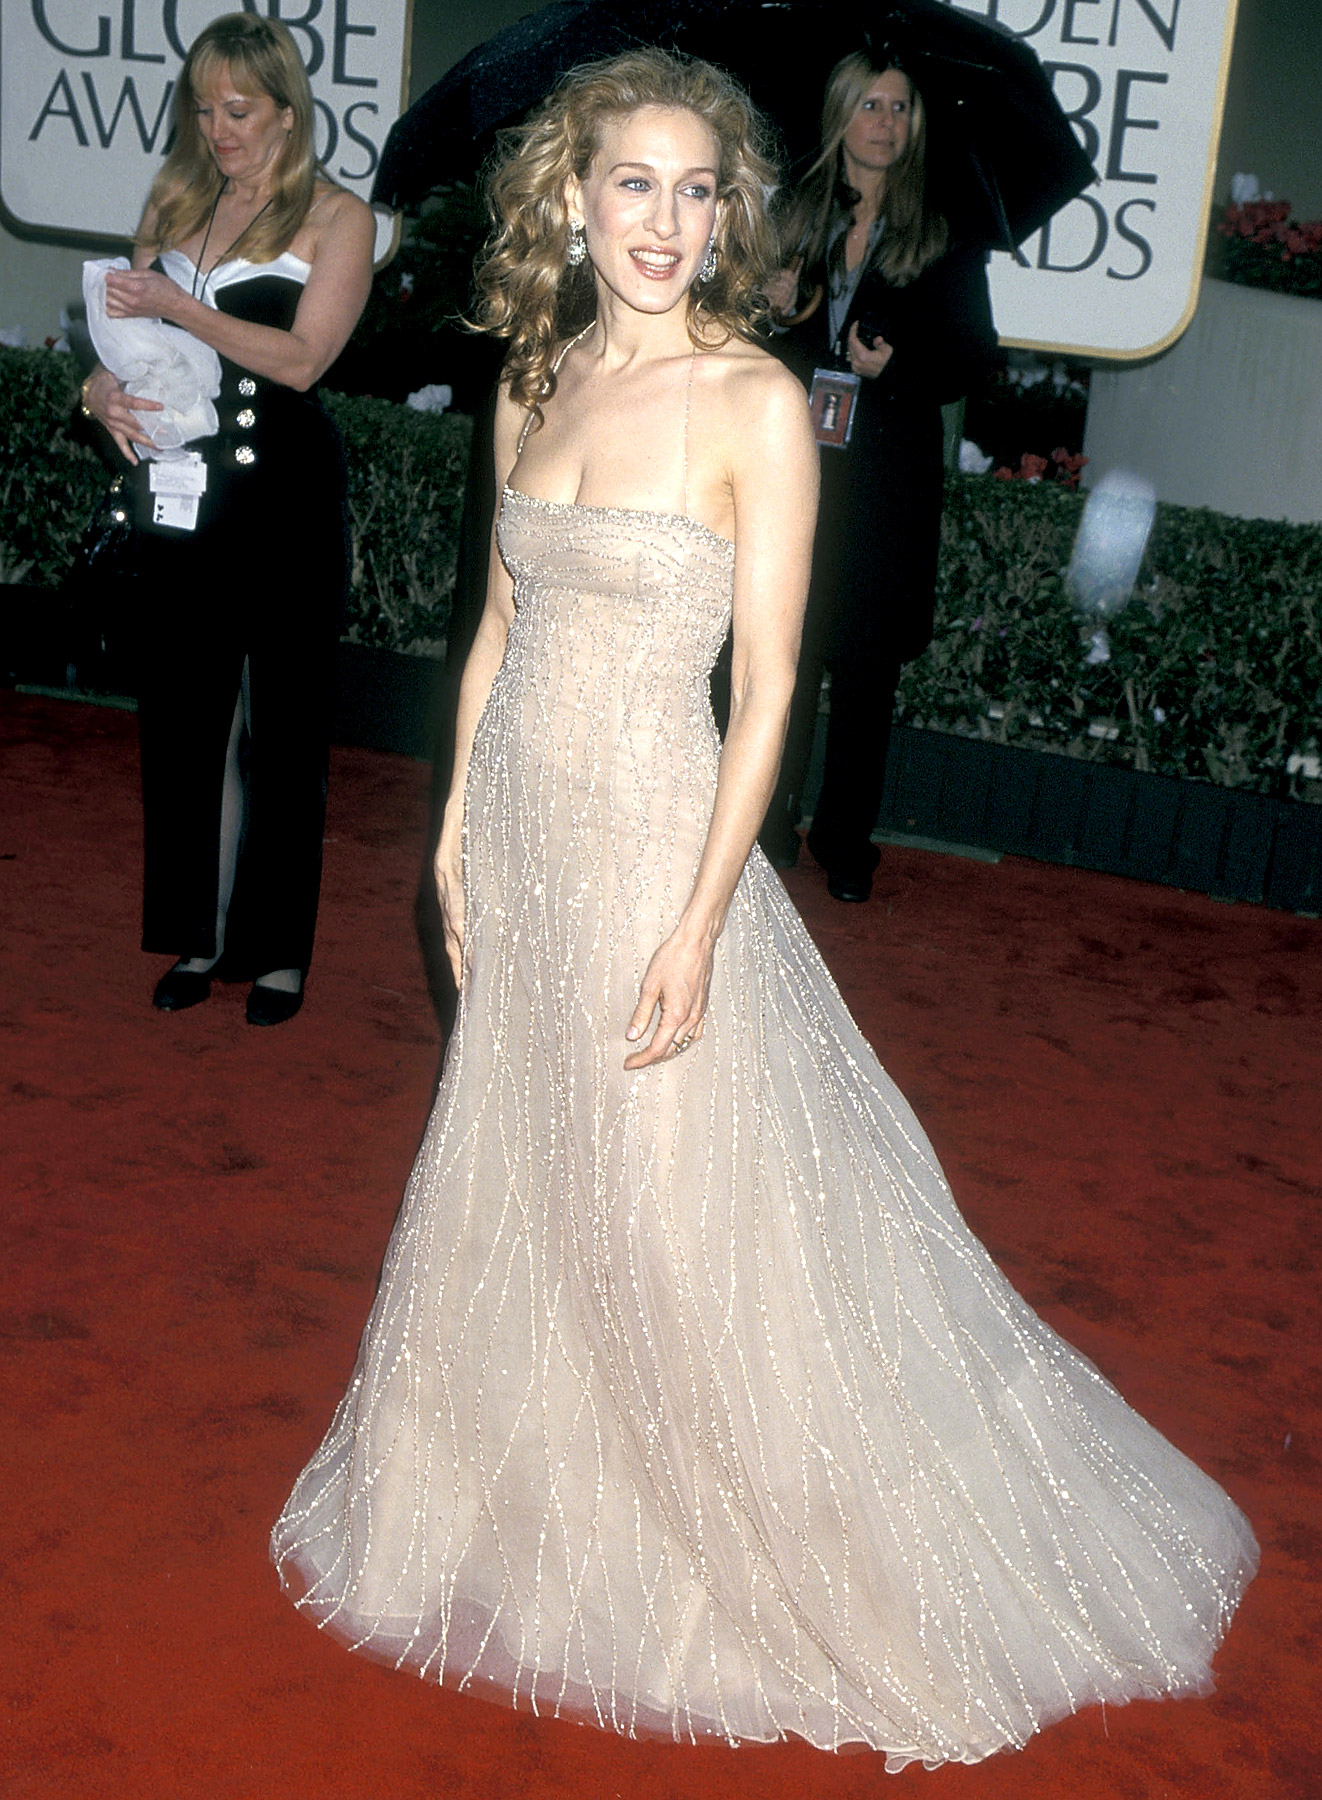 In a bedazzled, nude Richard Tyler gown, Parker accepted her first Golden Globe on Jan. 23, 2000, for her role as Carrie Bradshaw on Sex and the City . It ended up being one of her most memorable red carpet looks of all time.